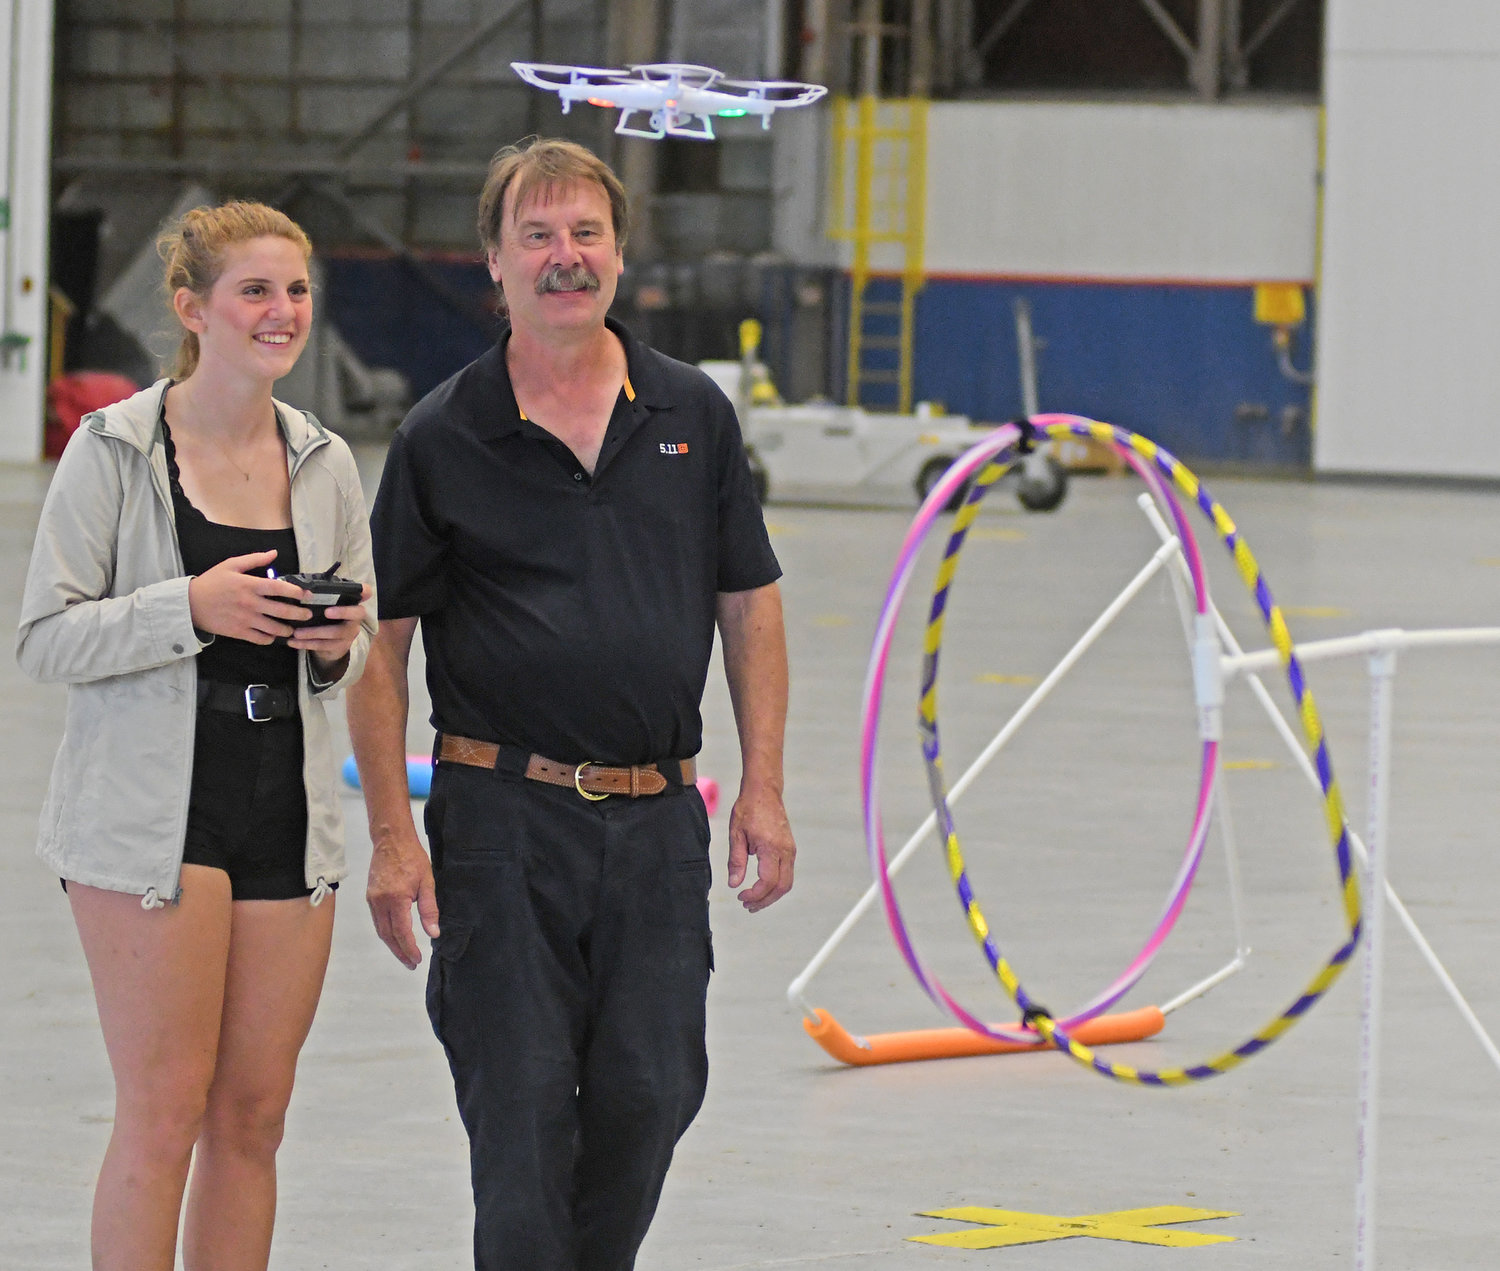 ON THE MOVE — Paige Novak, of Vernon-Verona-Sherrill High School, flies her drone through an obstacle course in Building 100 at Griffiss Business Park as instructor Bill Judycki looks on.